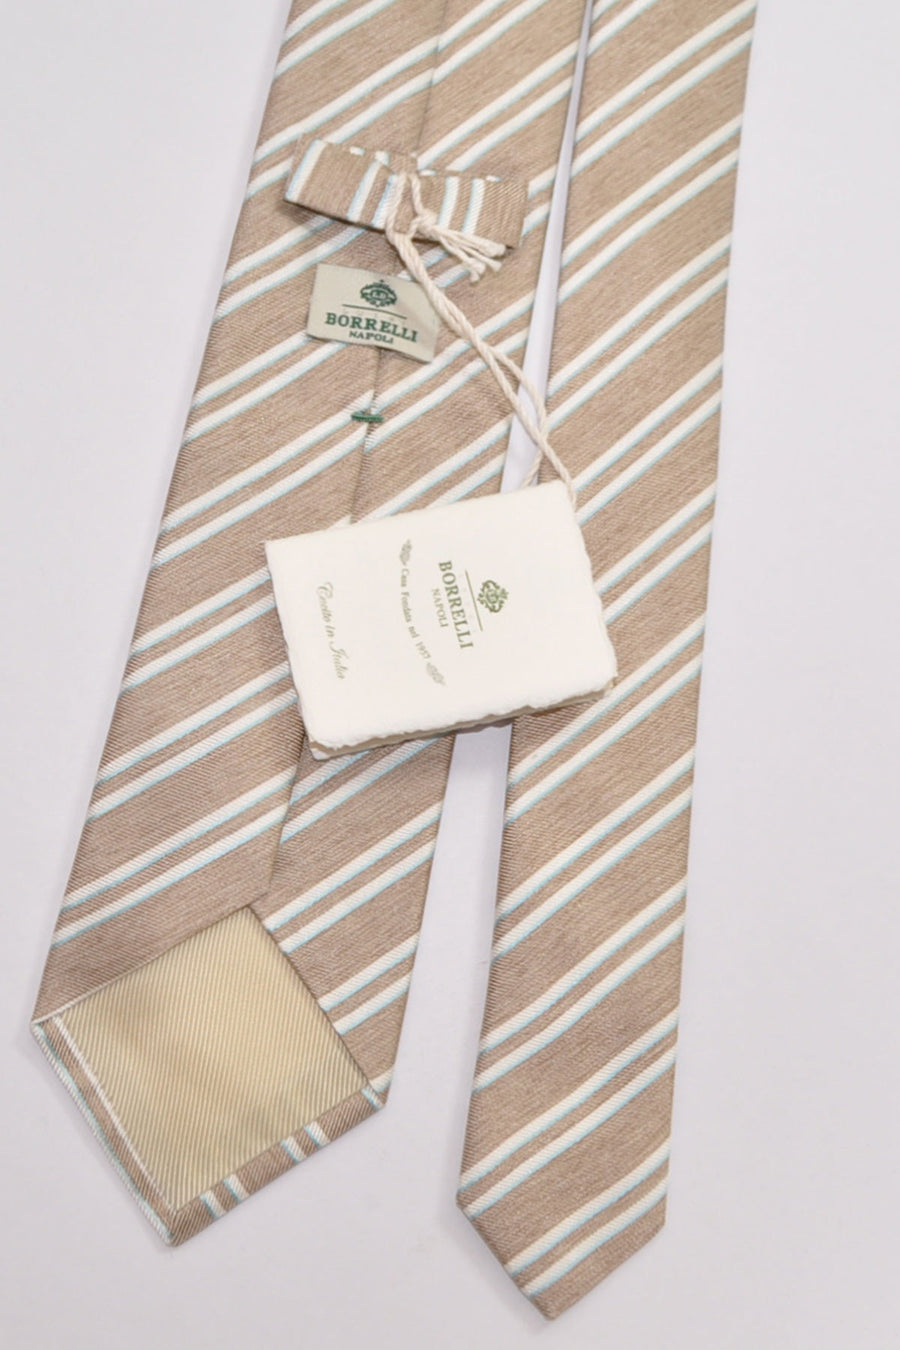 Luigi Borrelli Silk Tie Brown White Sky Blue Stripes SALE